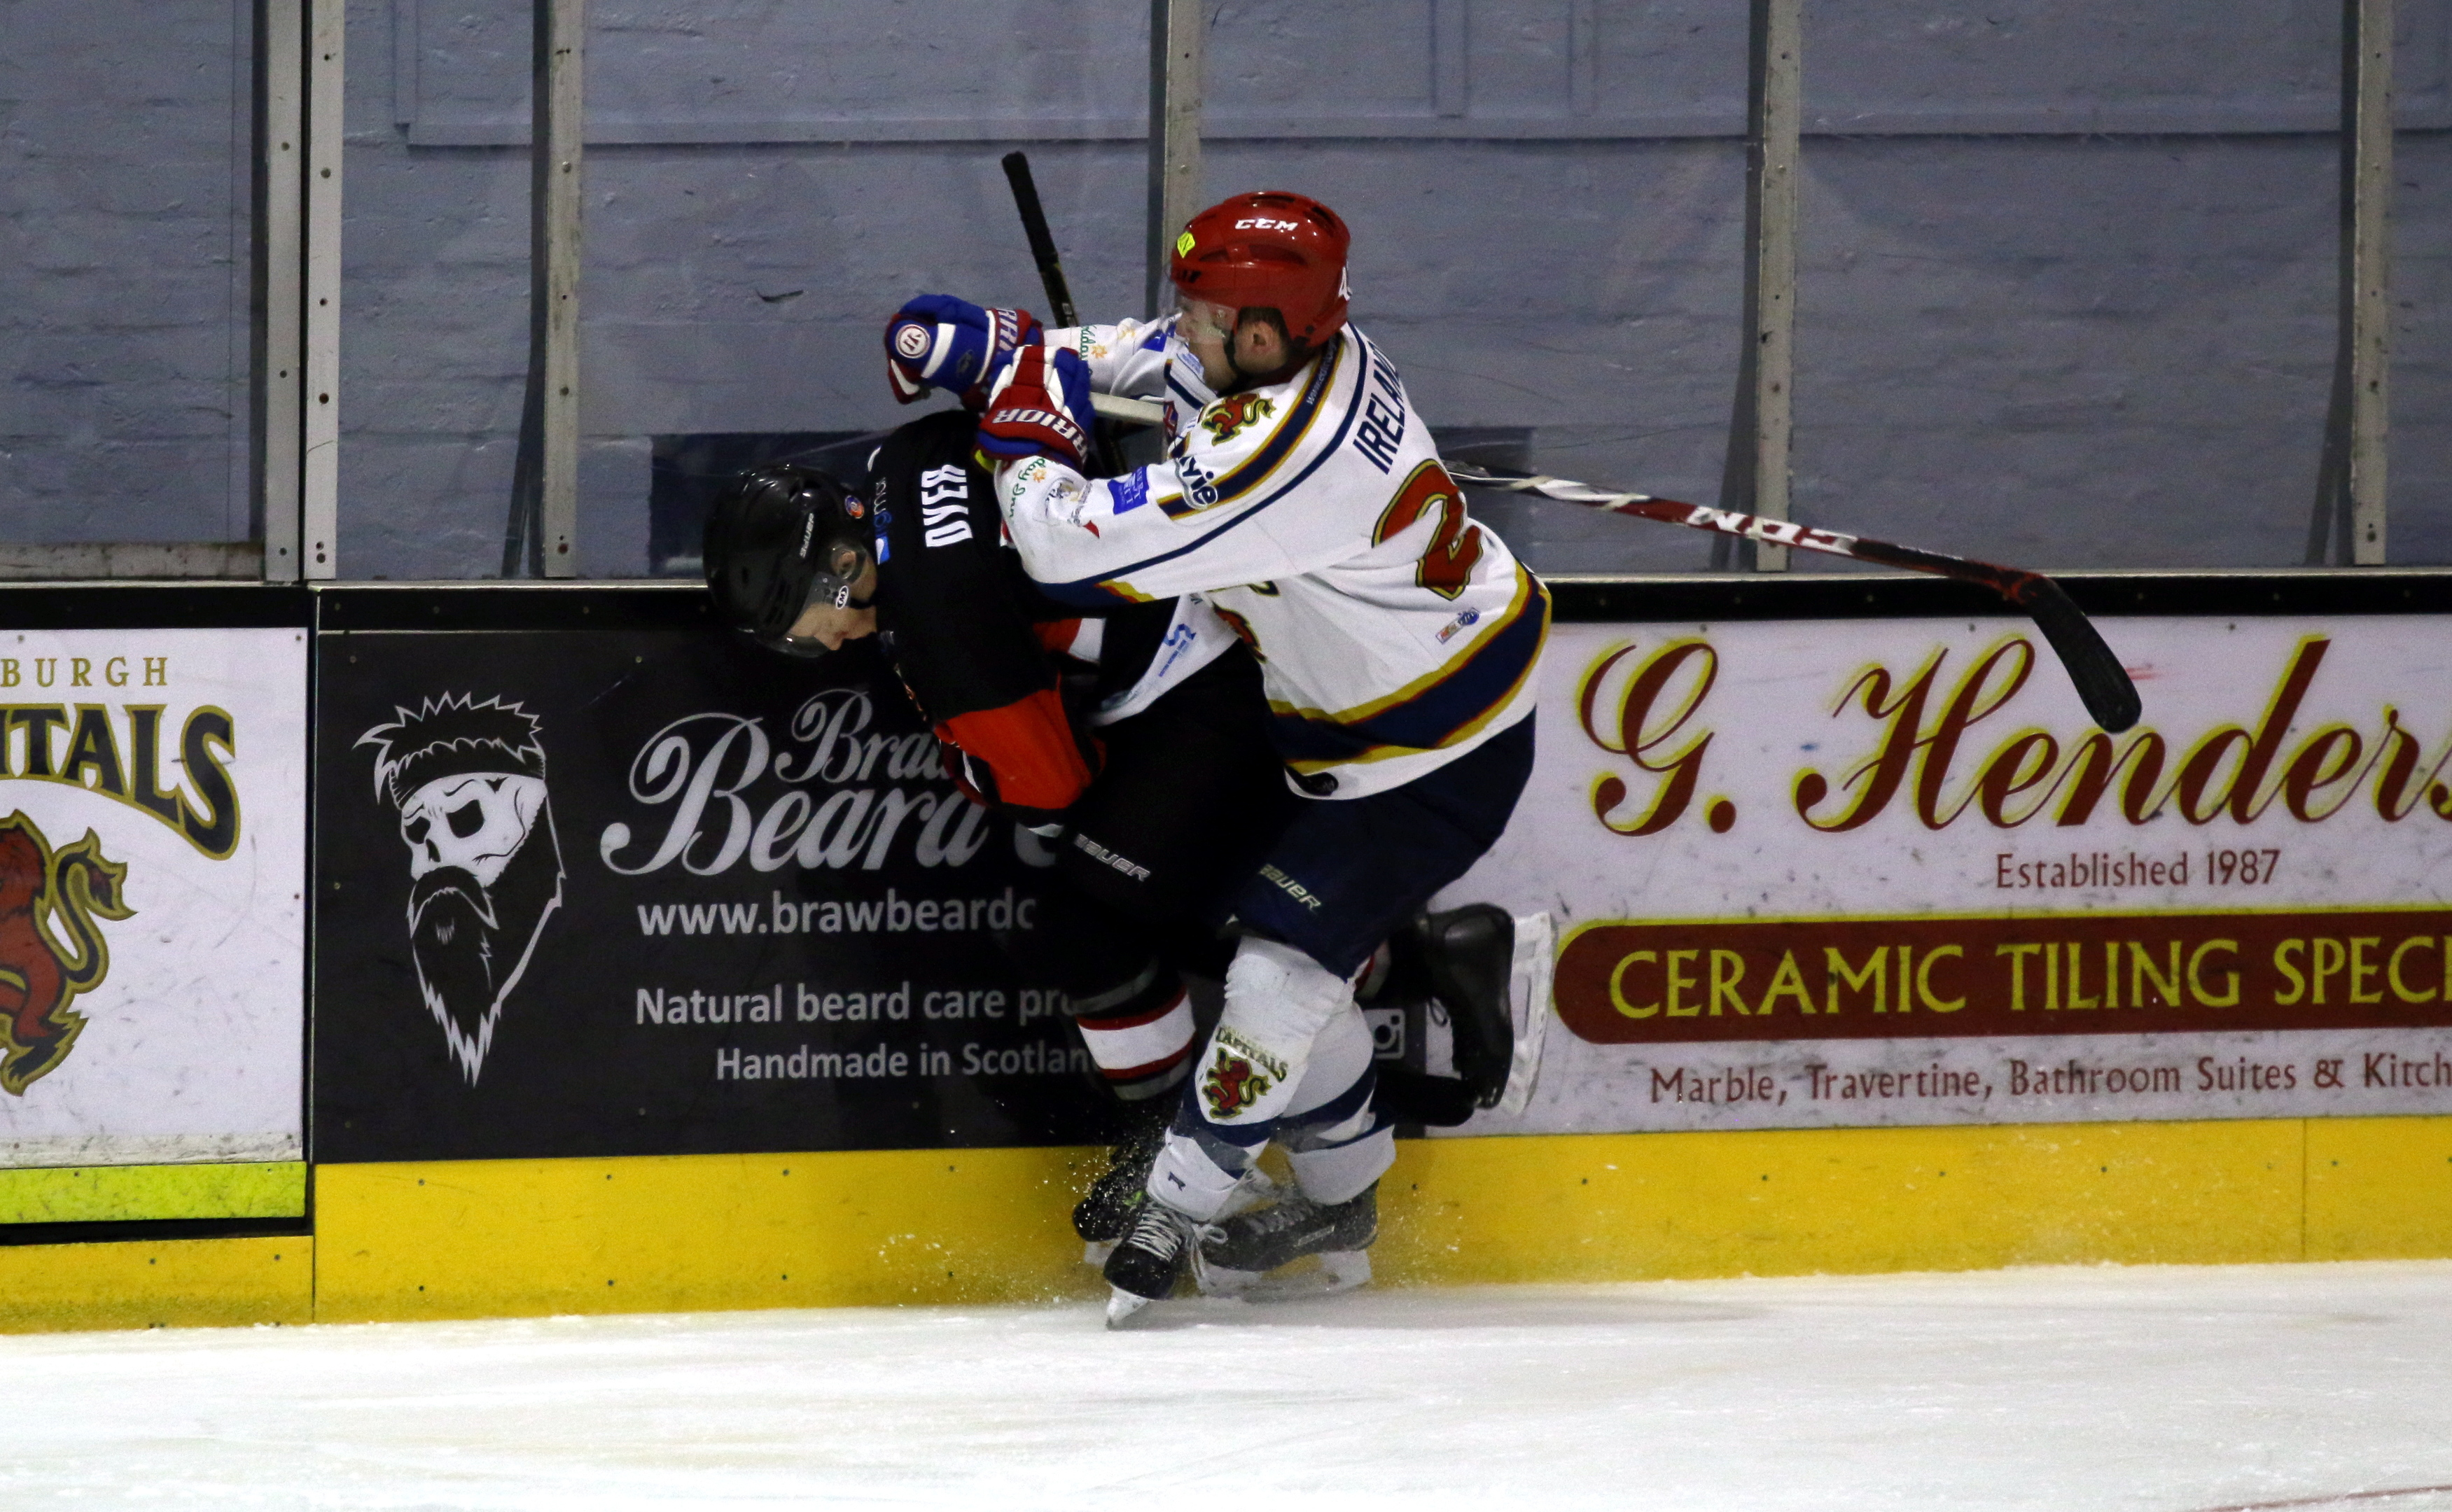 Aberdeen Lynx's Sean Dyer goes down after a strong tackle by Edinburgh Capitals' Michael Ireland. Picture by Ferguson Photography.